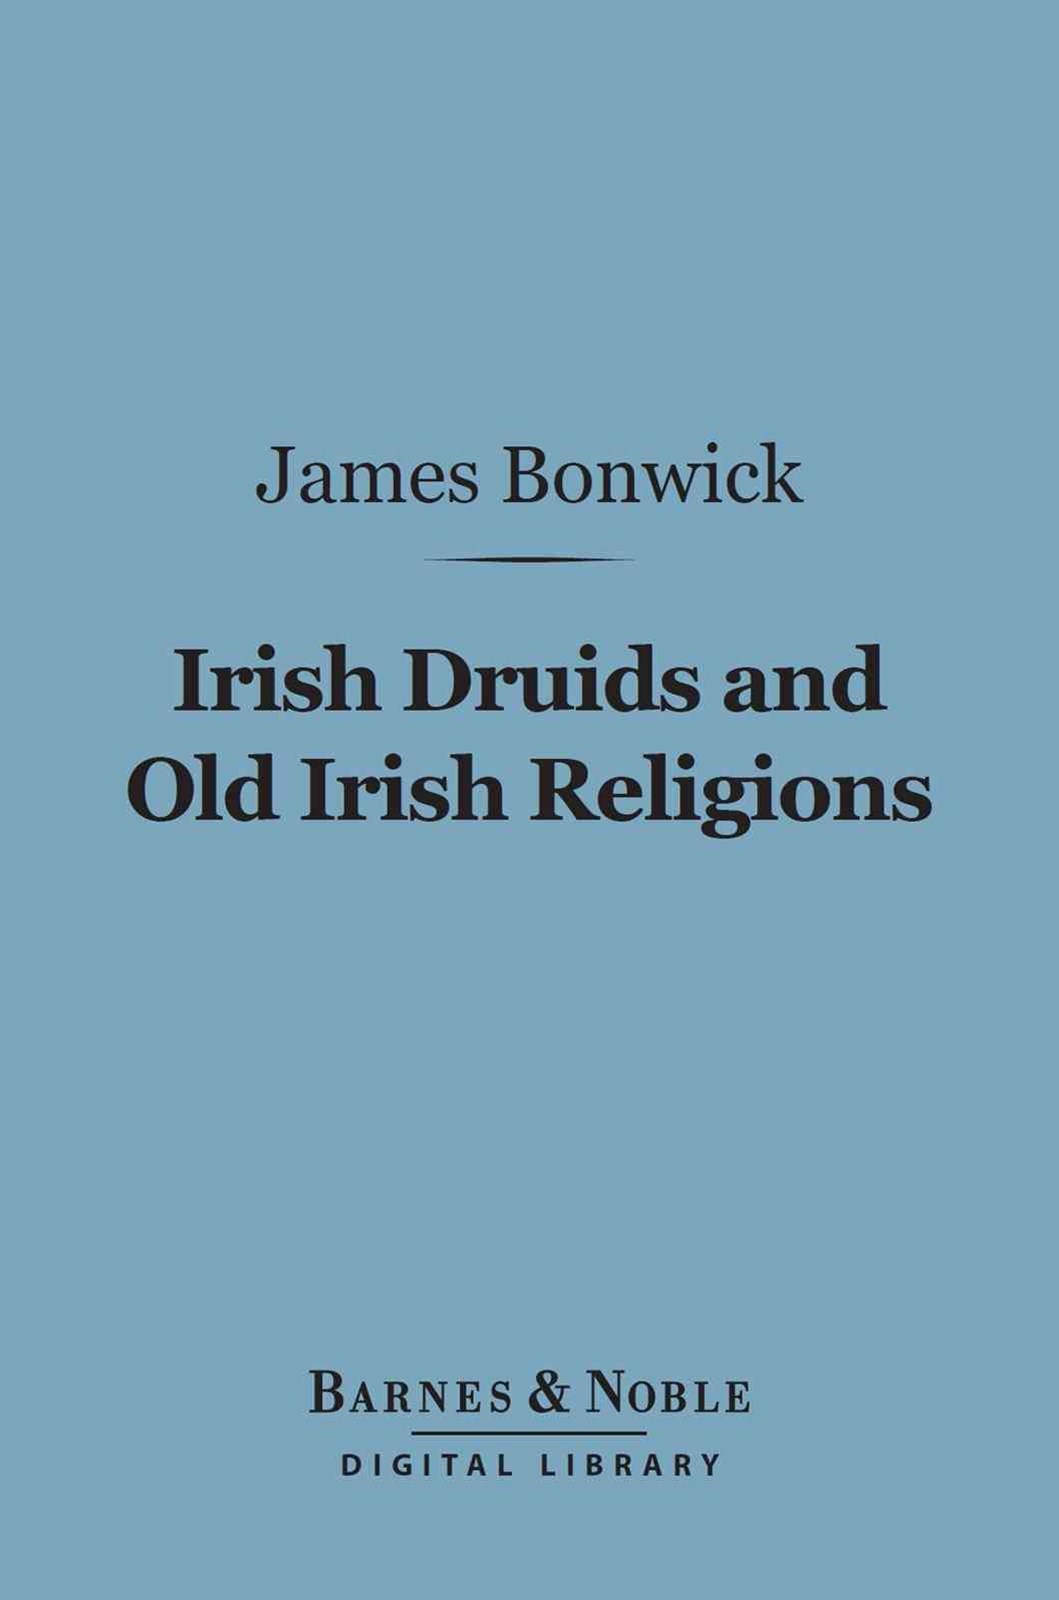 (ebook) Irish Druids and Old Irish Religions (Barnes & Noble Digital Library)